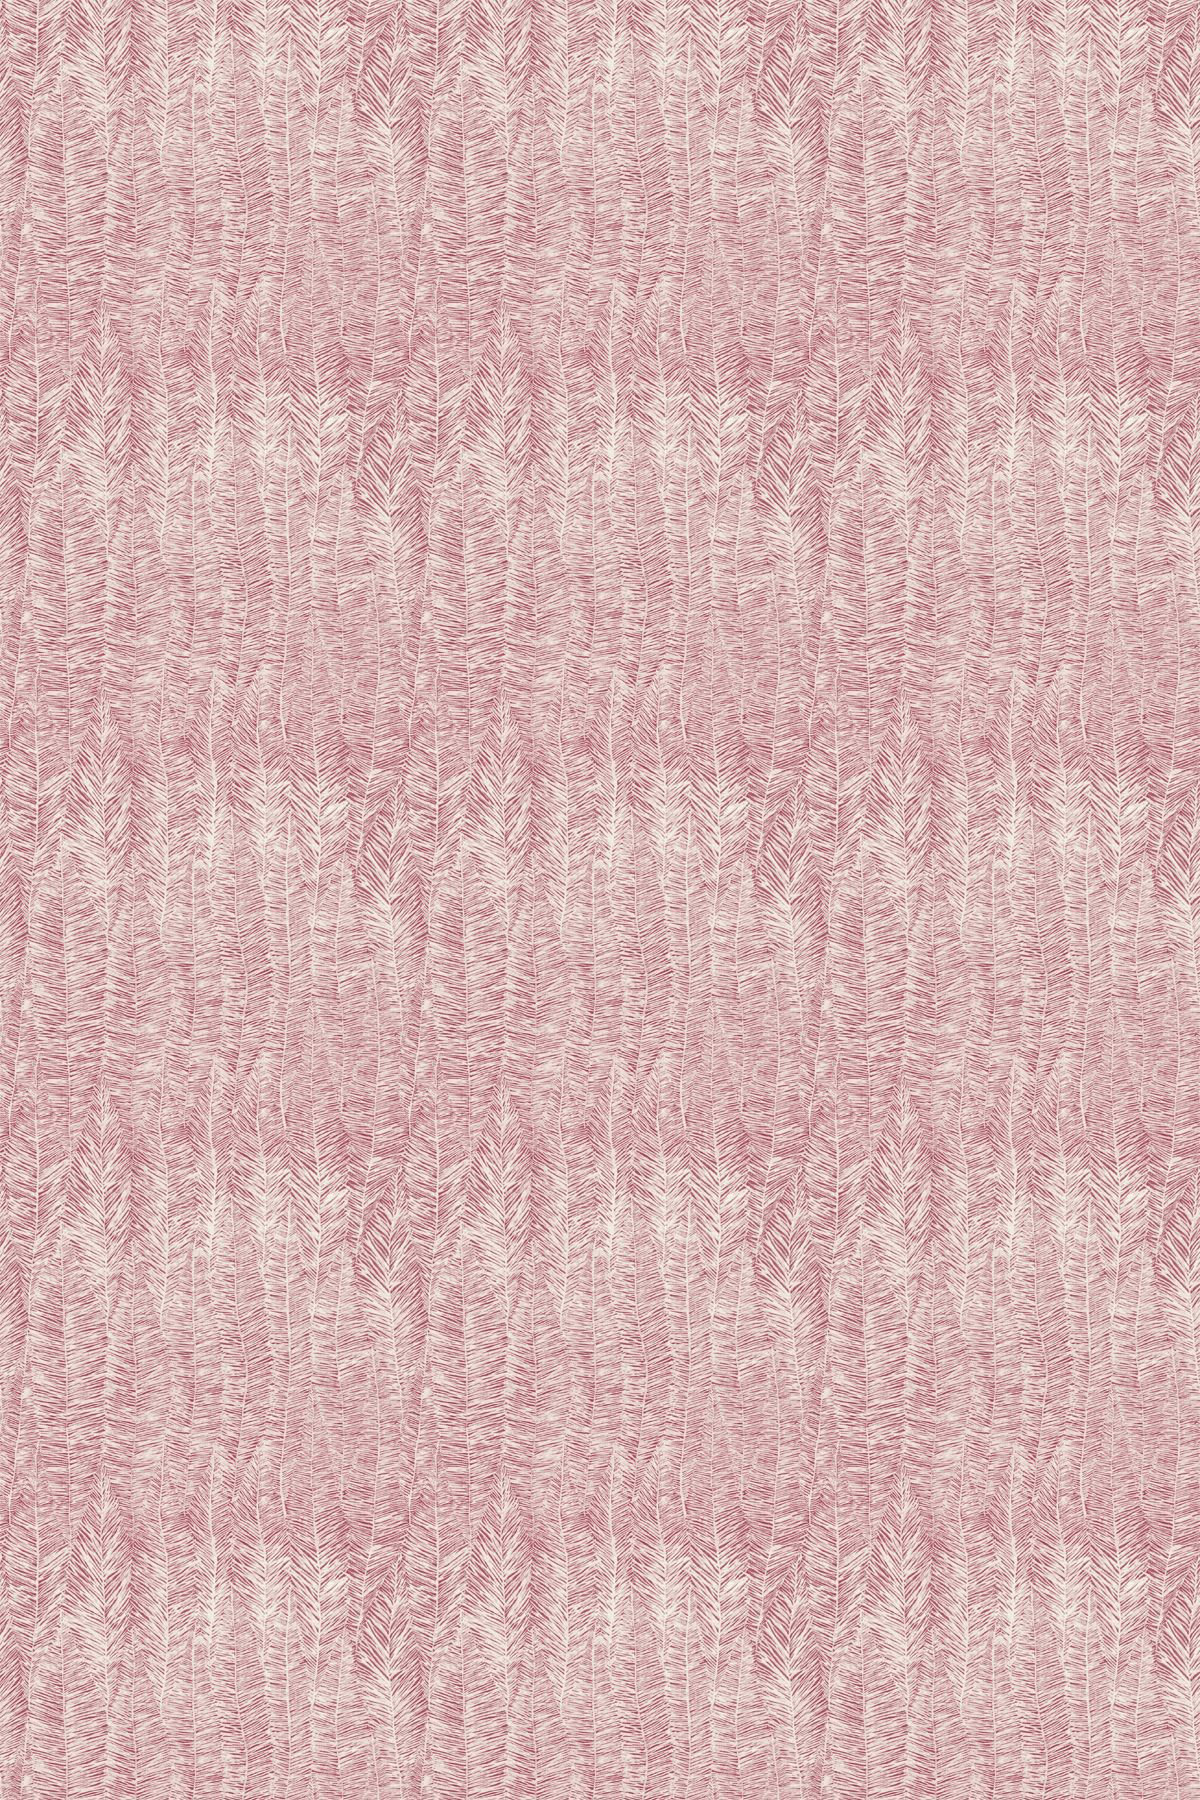 Image of Blendworth Fabric Quill, Quill/004